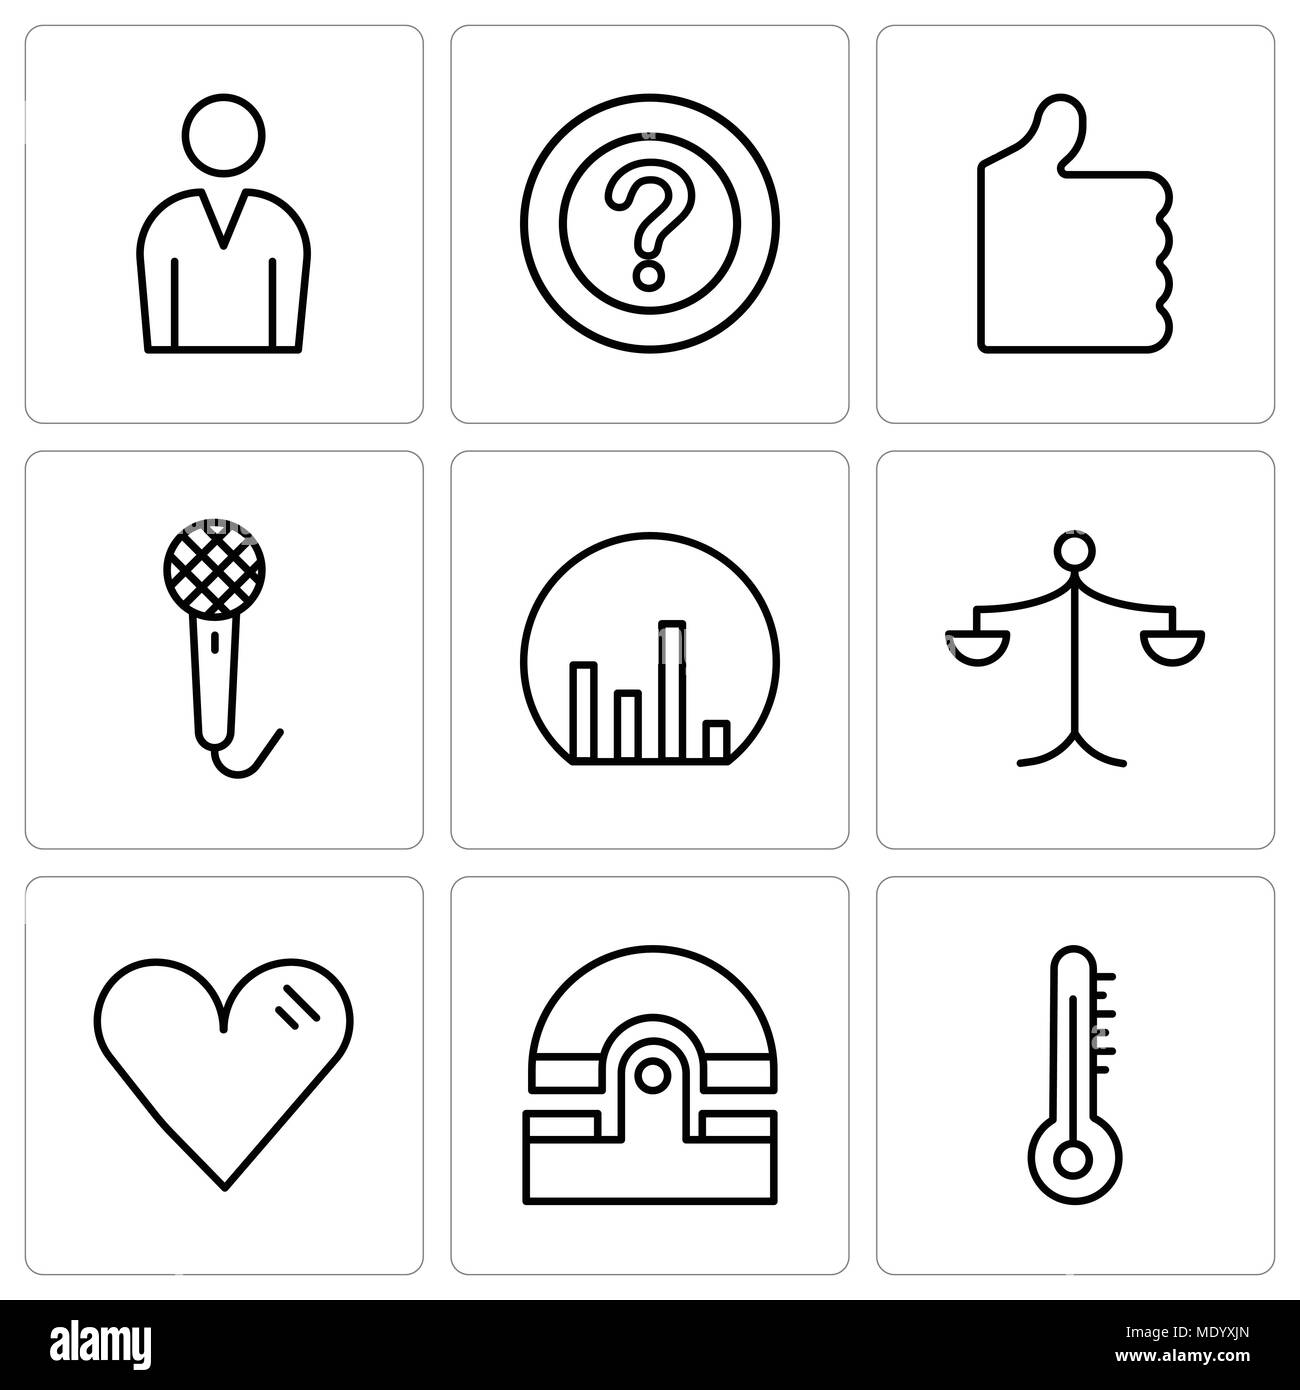 Set of 9 simple editable icons such as mercury thermometer old set of 9 simple editable icons such as mercury thermometer old phone heart weighing scale bar chart voice recorder thumb up question mark male ccuart Image collections